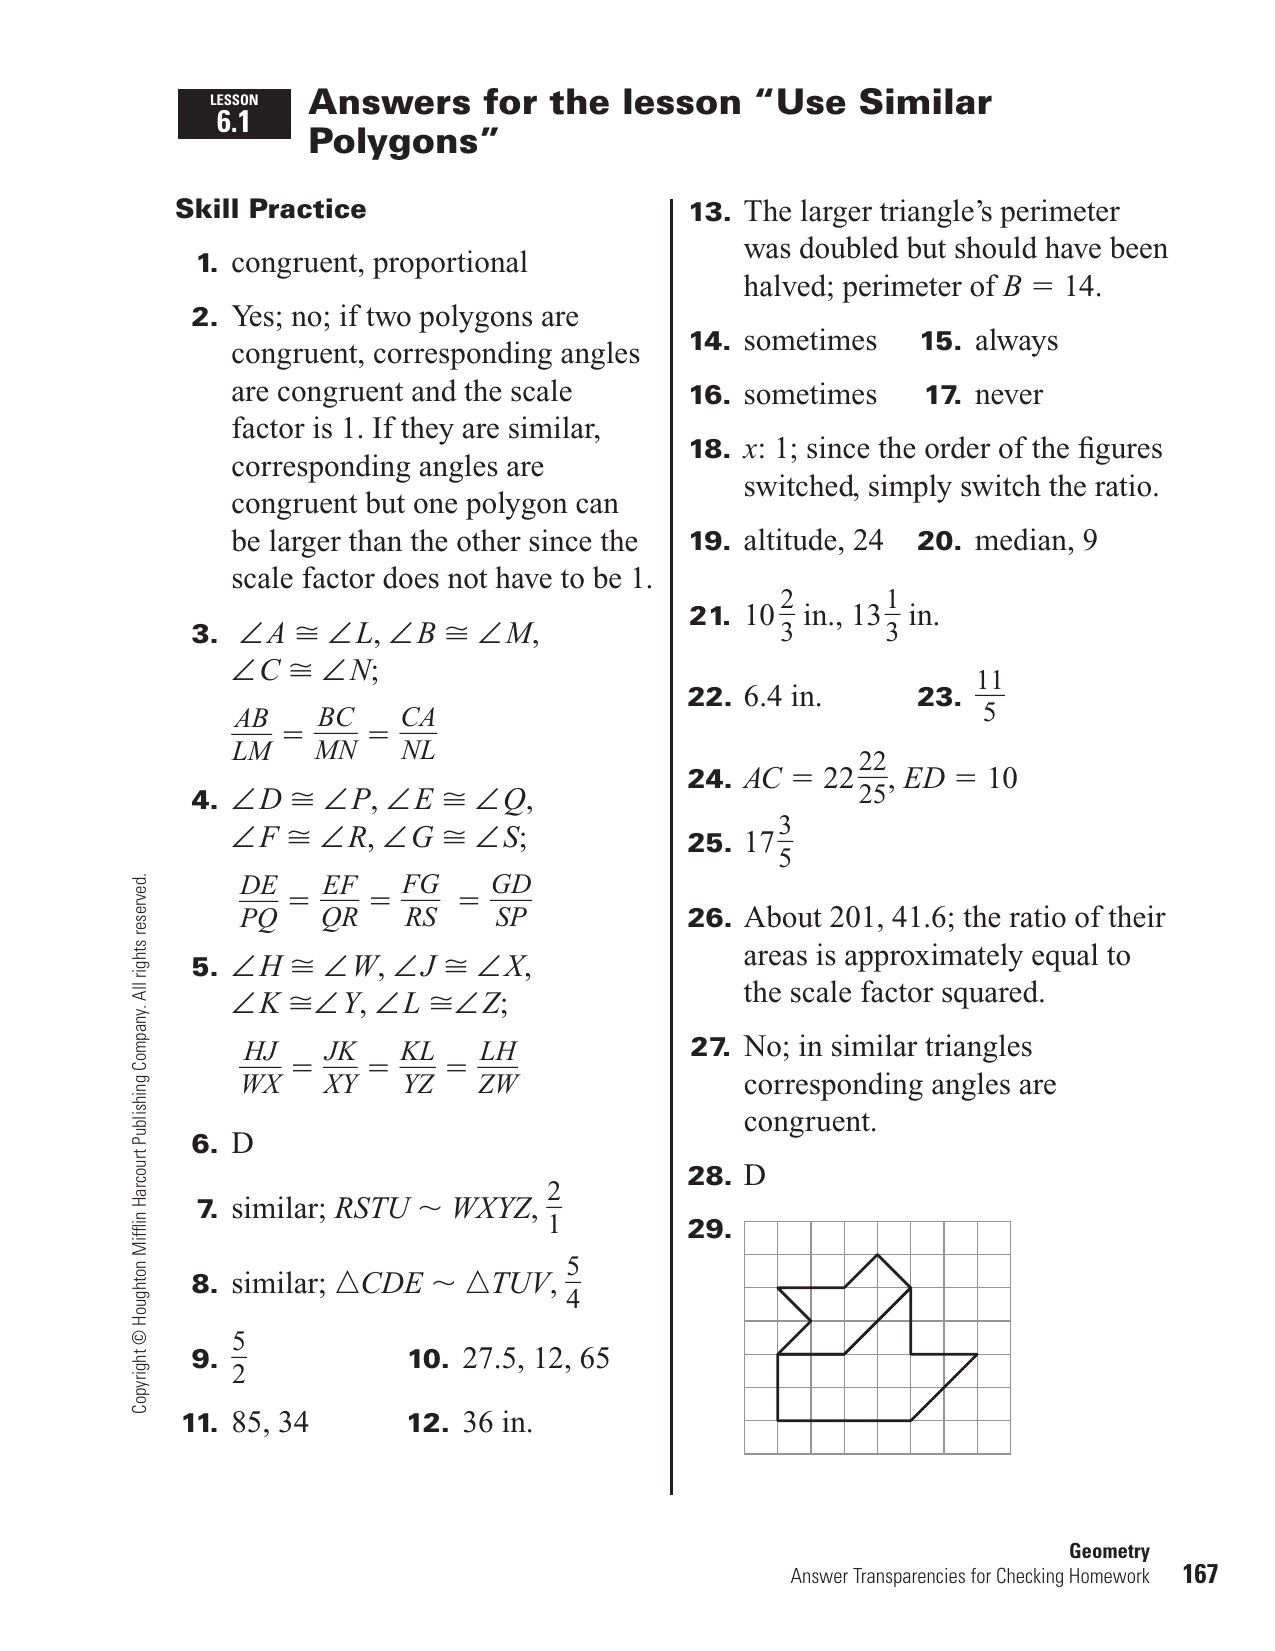 Alternate Interior Angles Worksheet Pics